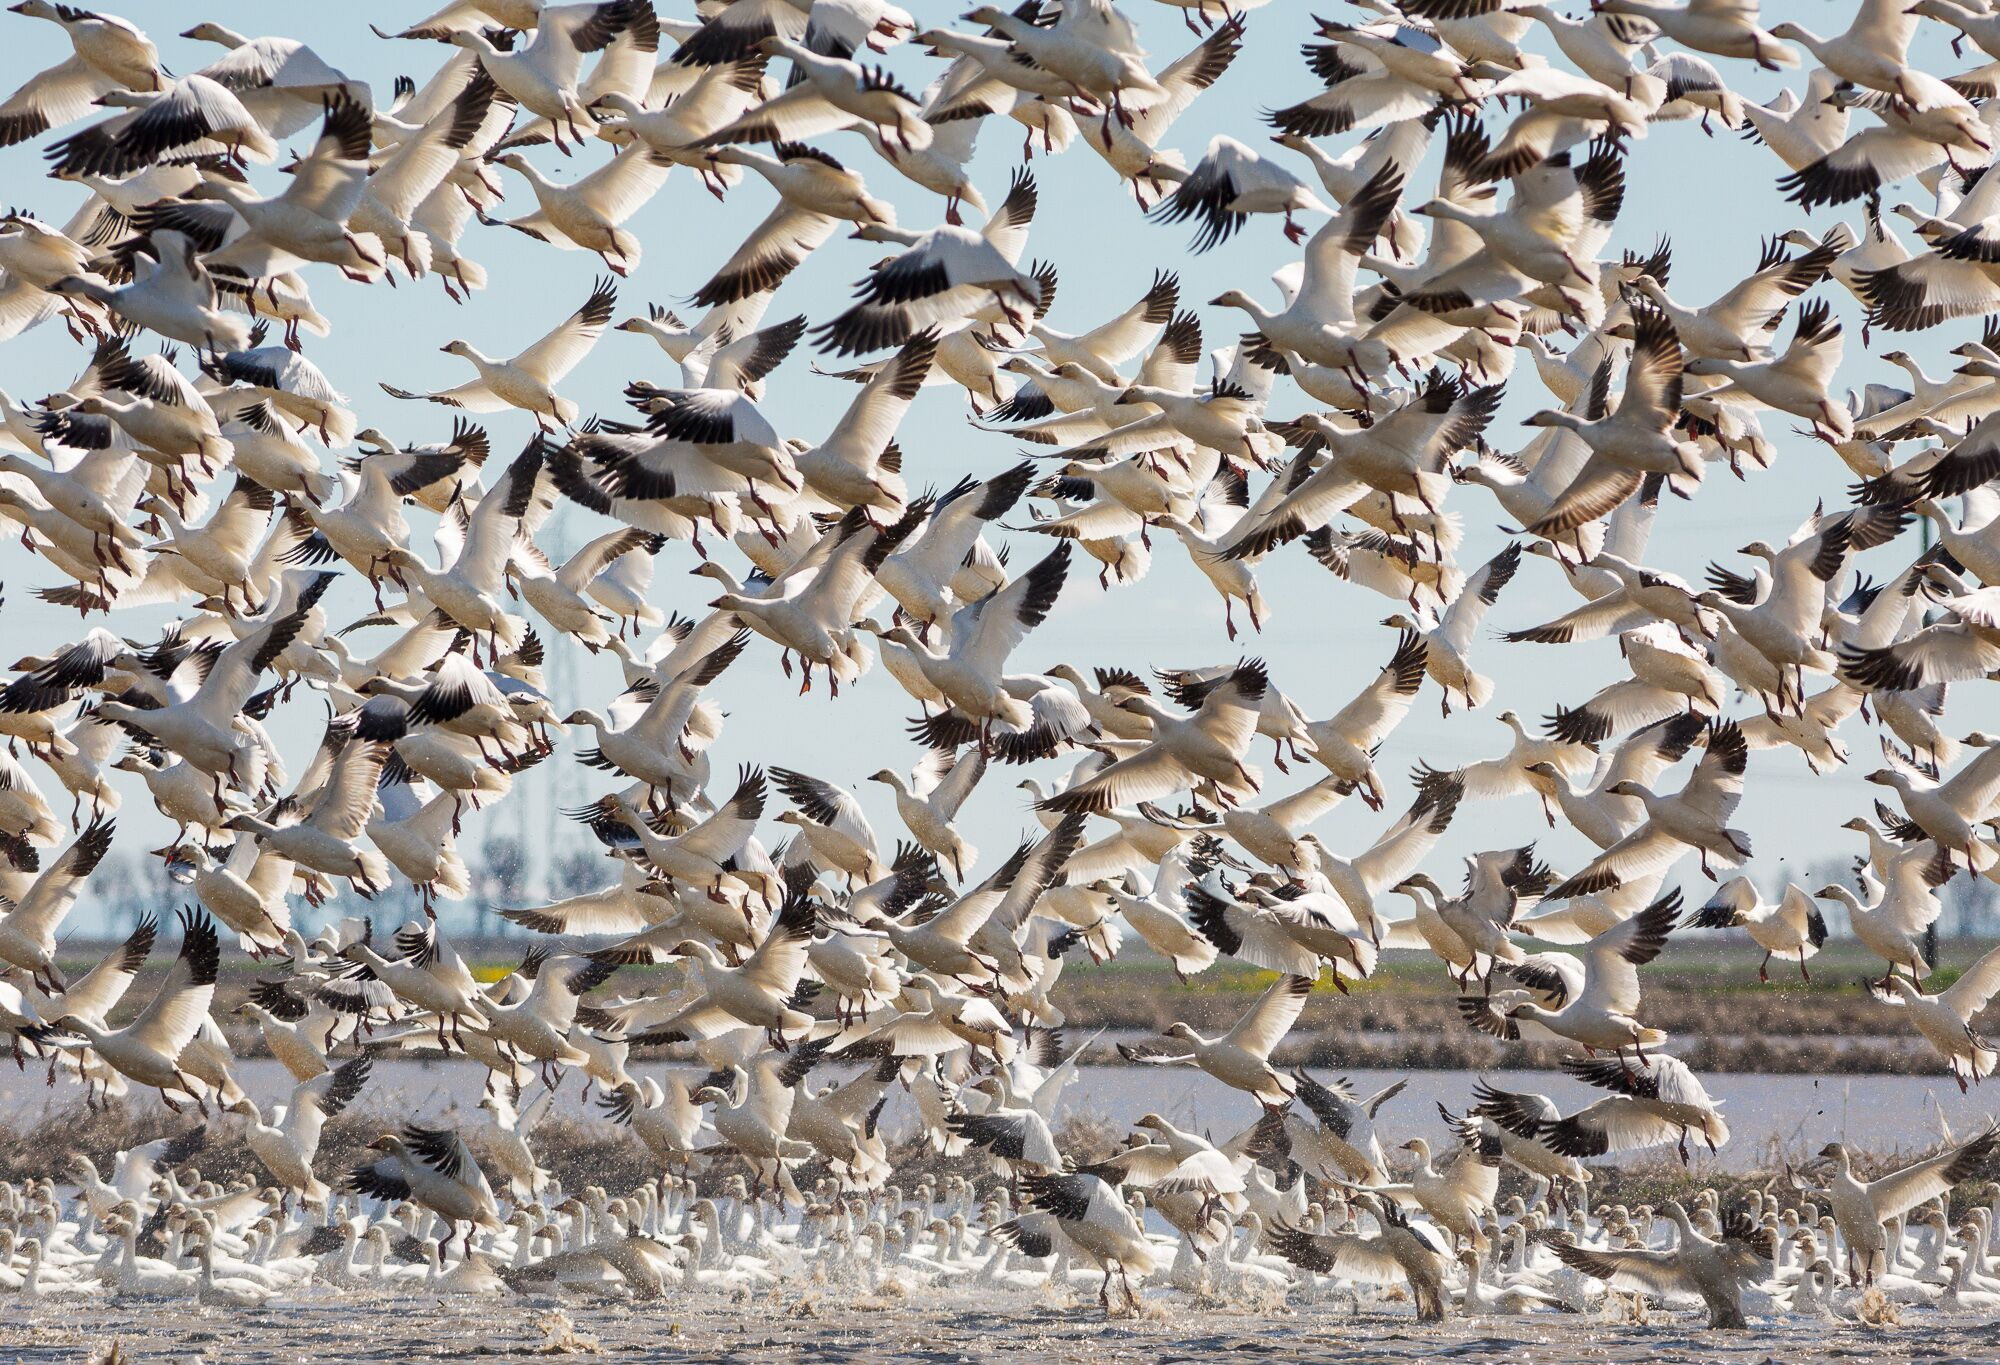 A dense flock of snow geese lifts off from a flooded rice field in California's Central Valley.